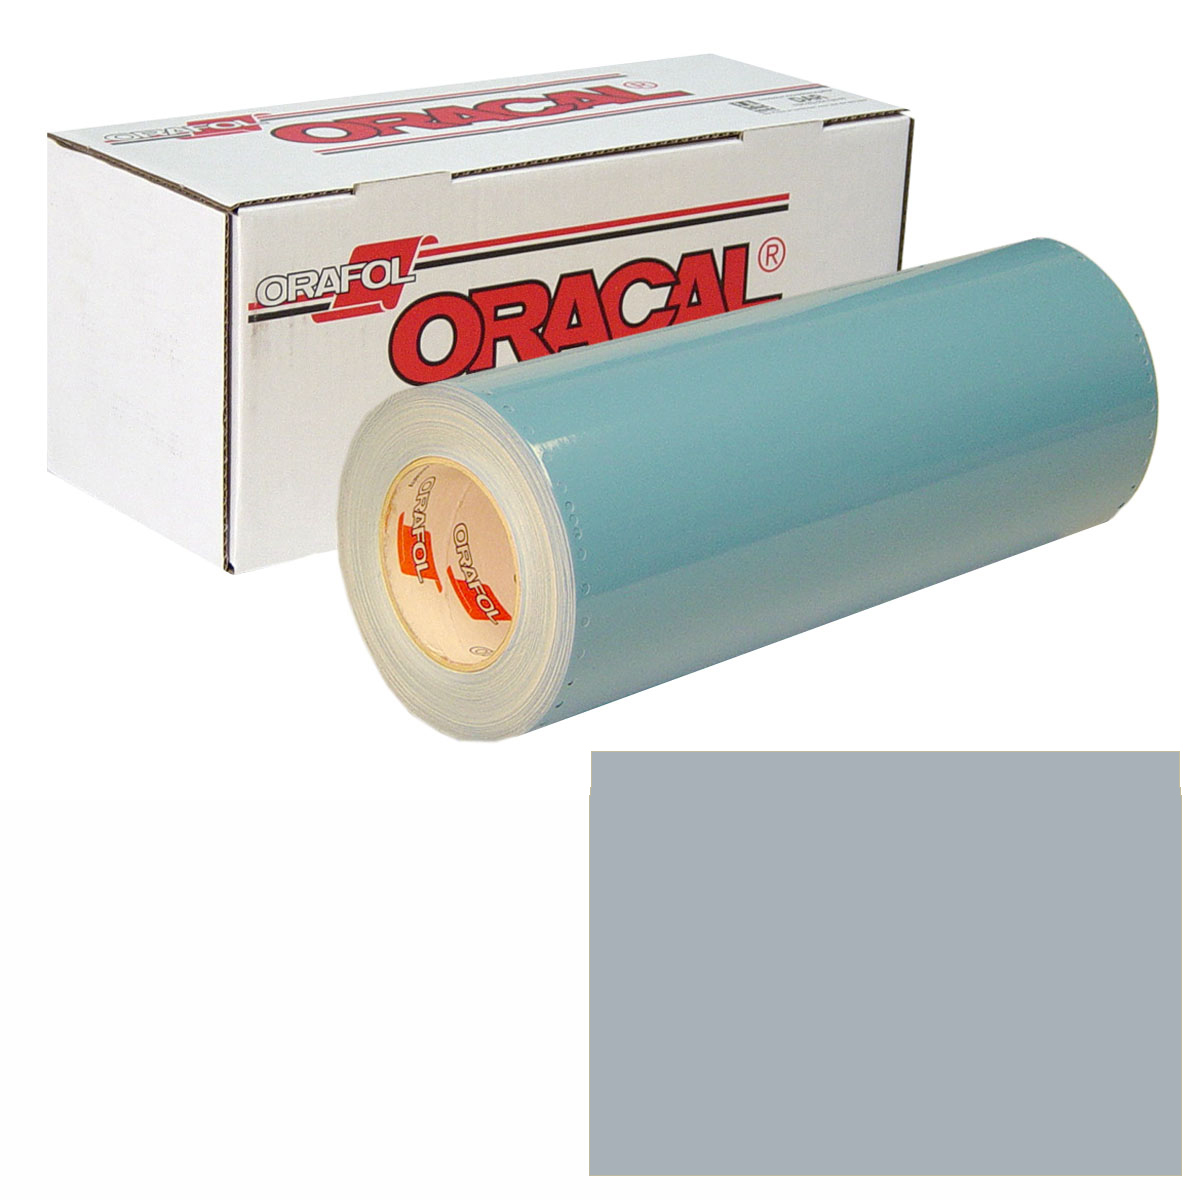 ORACAL 751 30In X 10Yd 090 Silver Grey